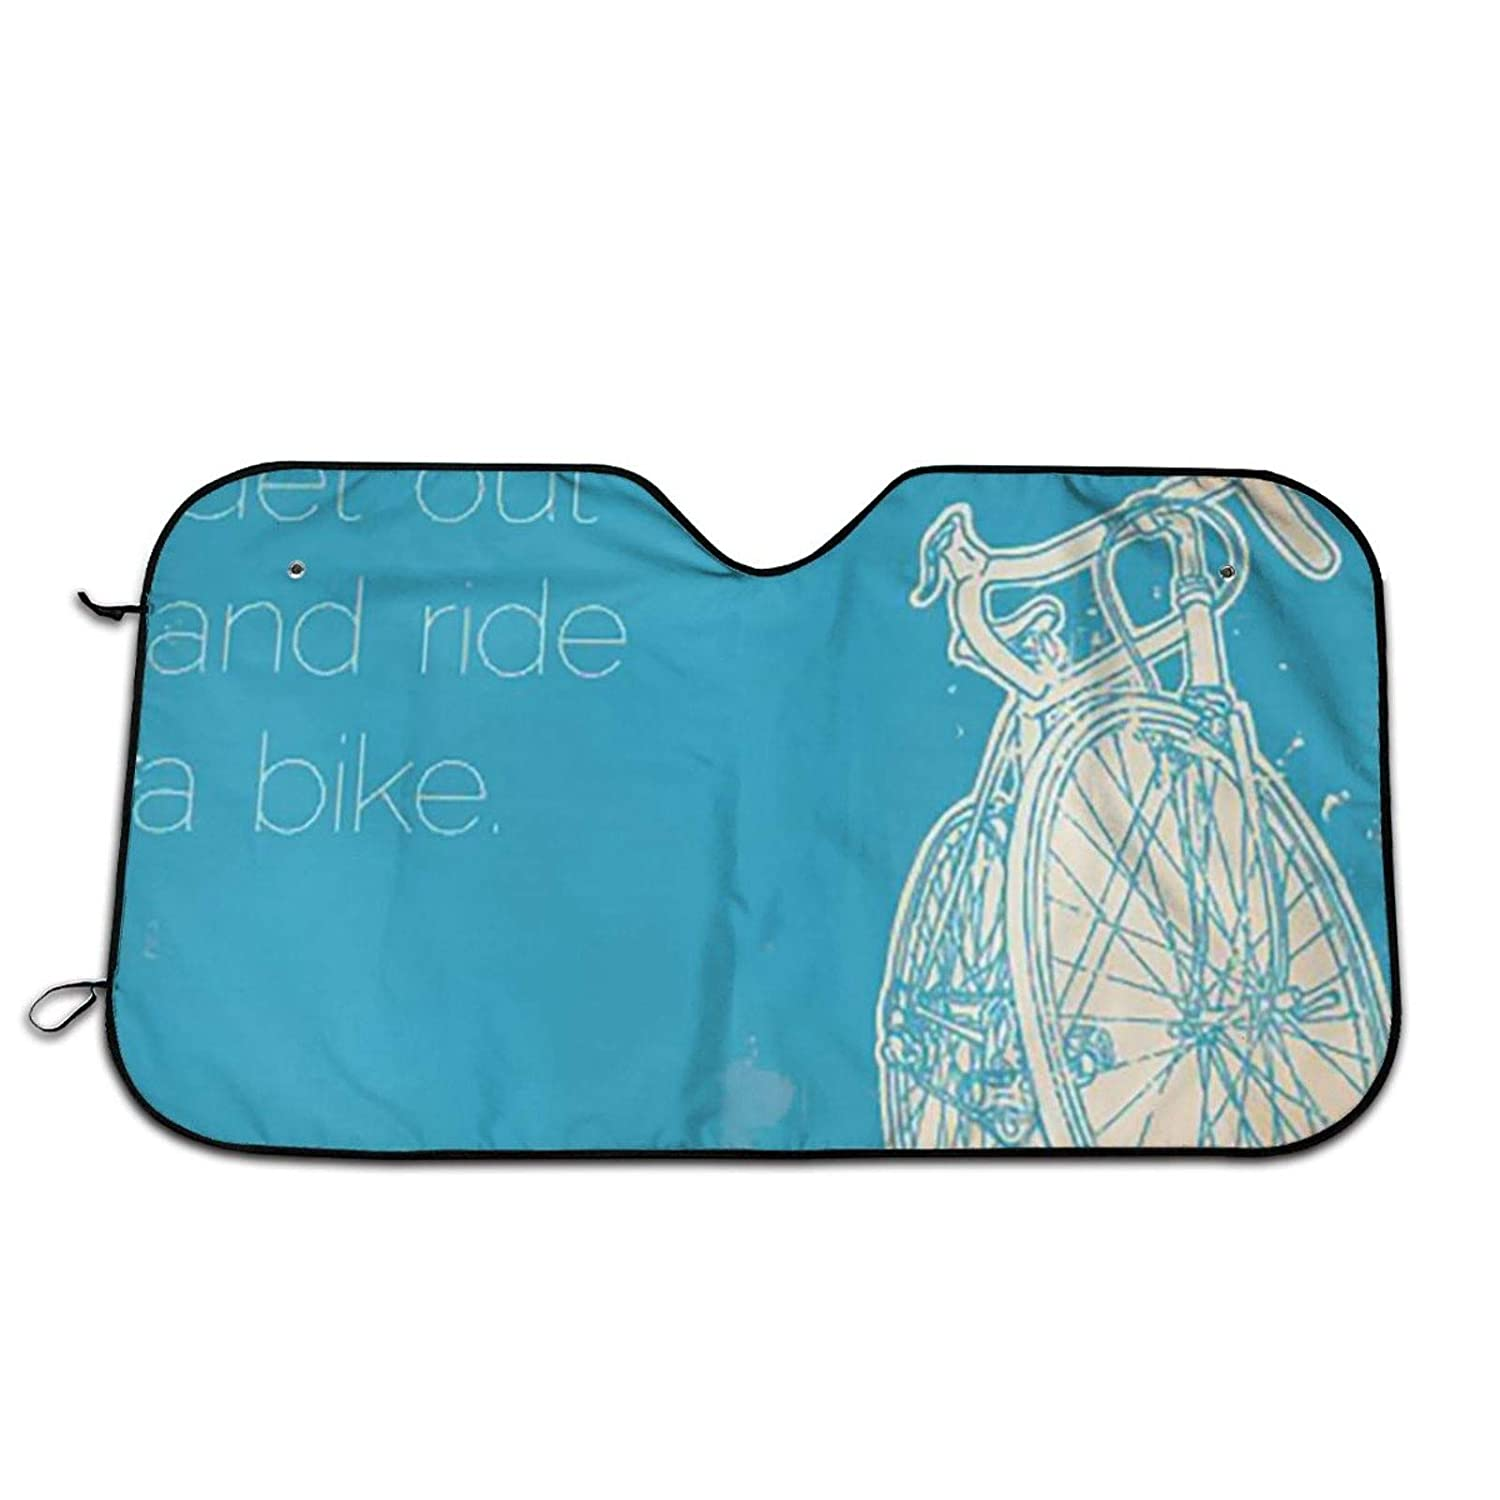 Durable New mail order Quote Get Out and Ride Side Bike Max 48% OFF Sun Windwhield a Auto